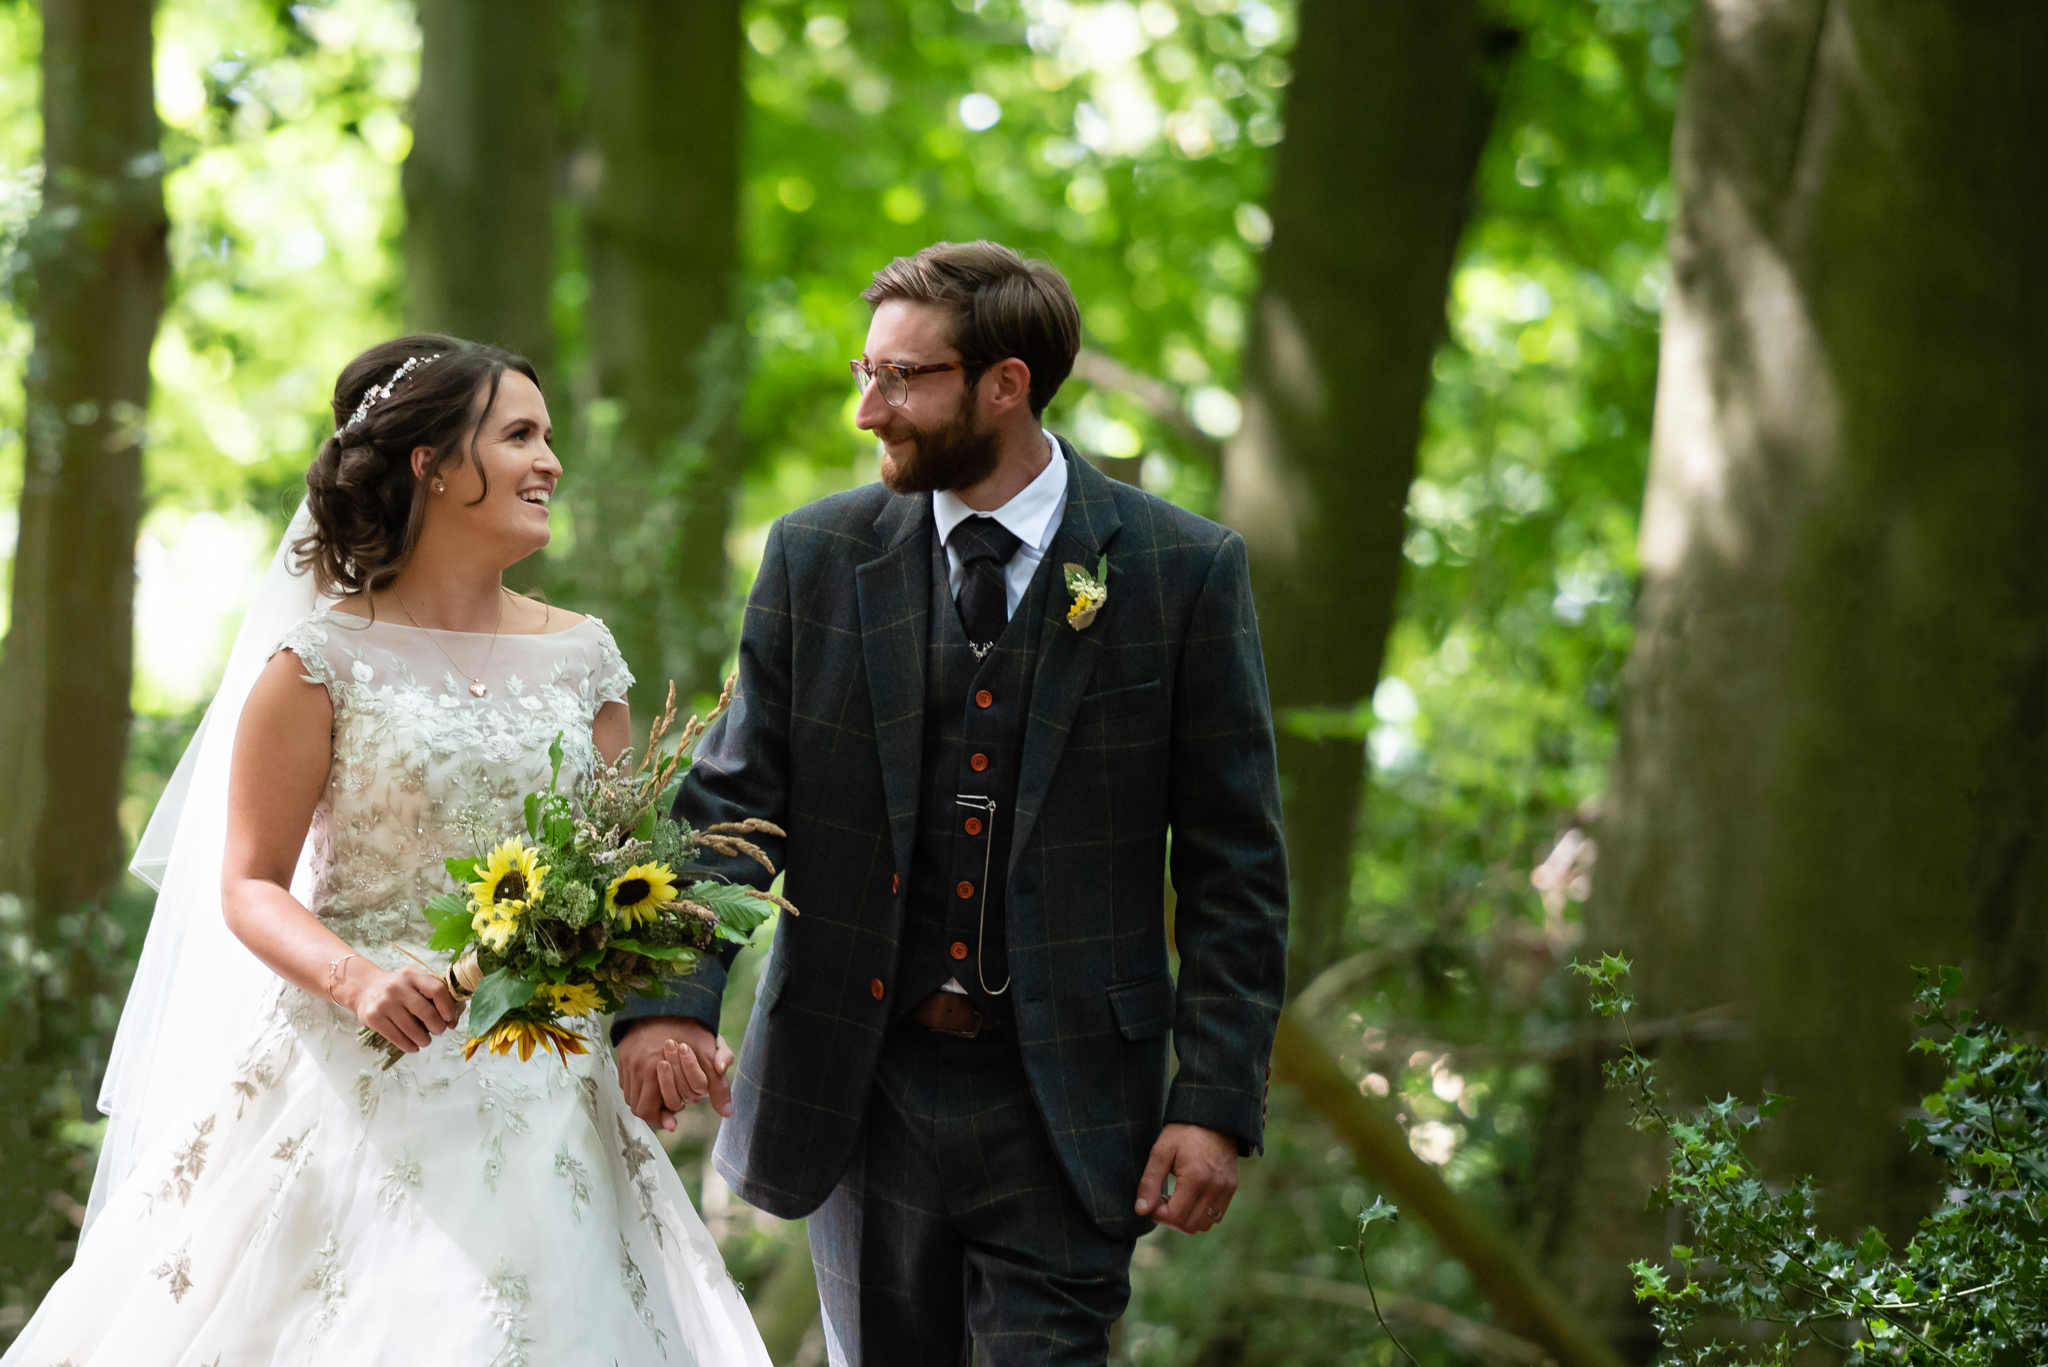 The bride and groom at their woodland wedding